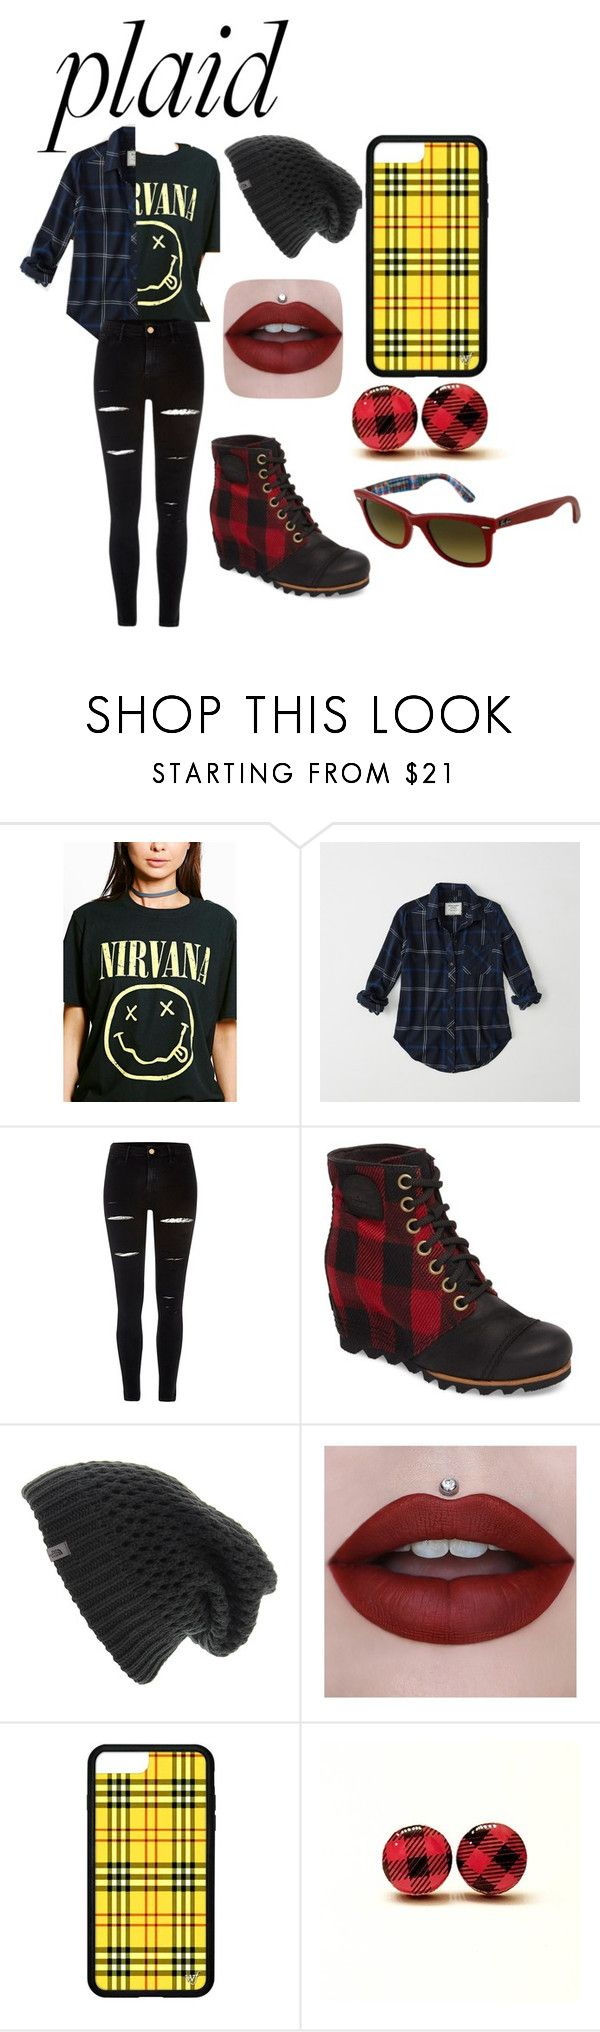 """Plaid nirvana outfit"" by foohead ❤ liked on Polyvore featuring Boohoo, Abercrombie & Fitch, River Island, SOREL, The North Face and Ray-Ban"